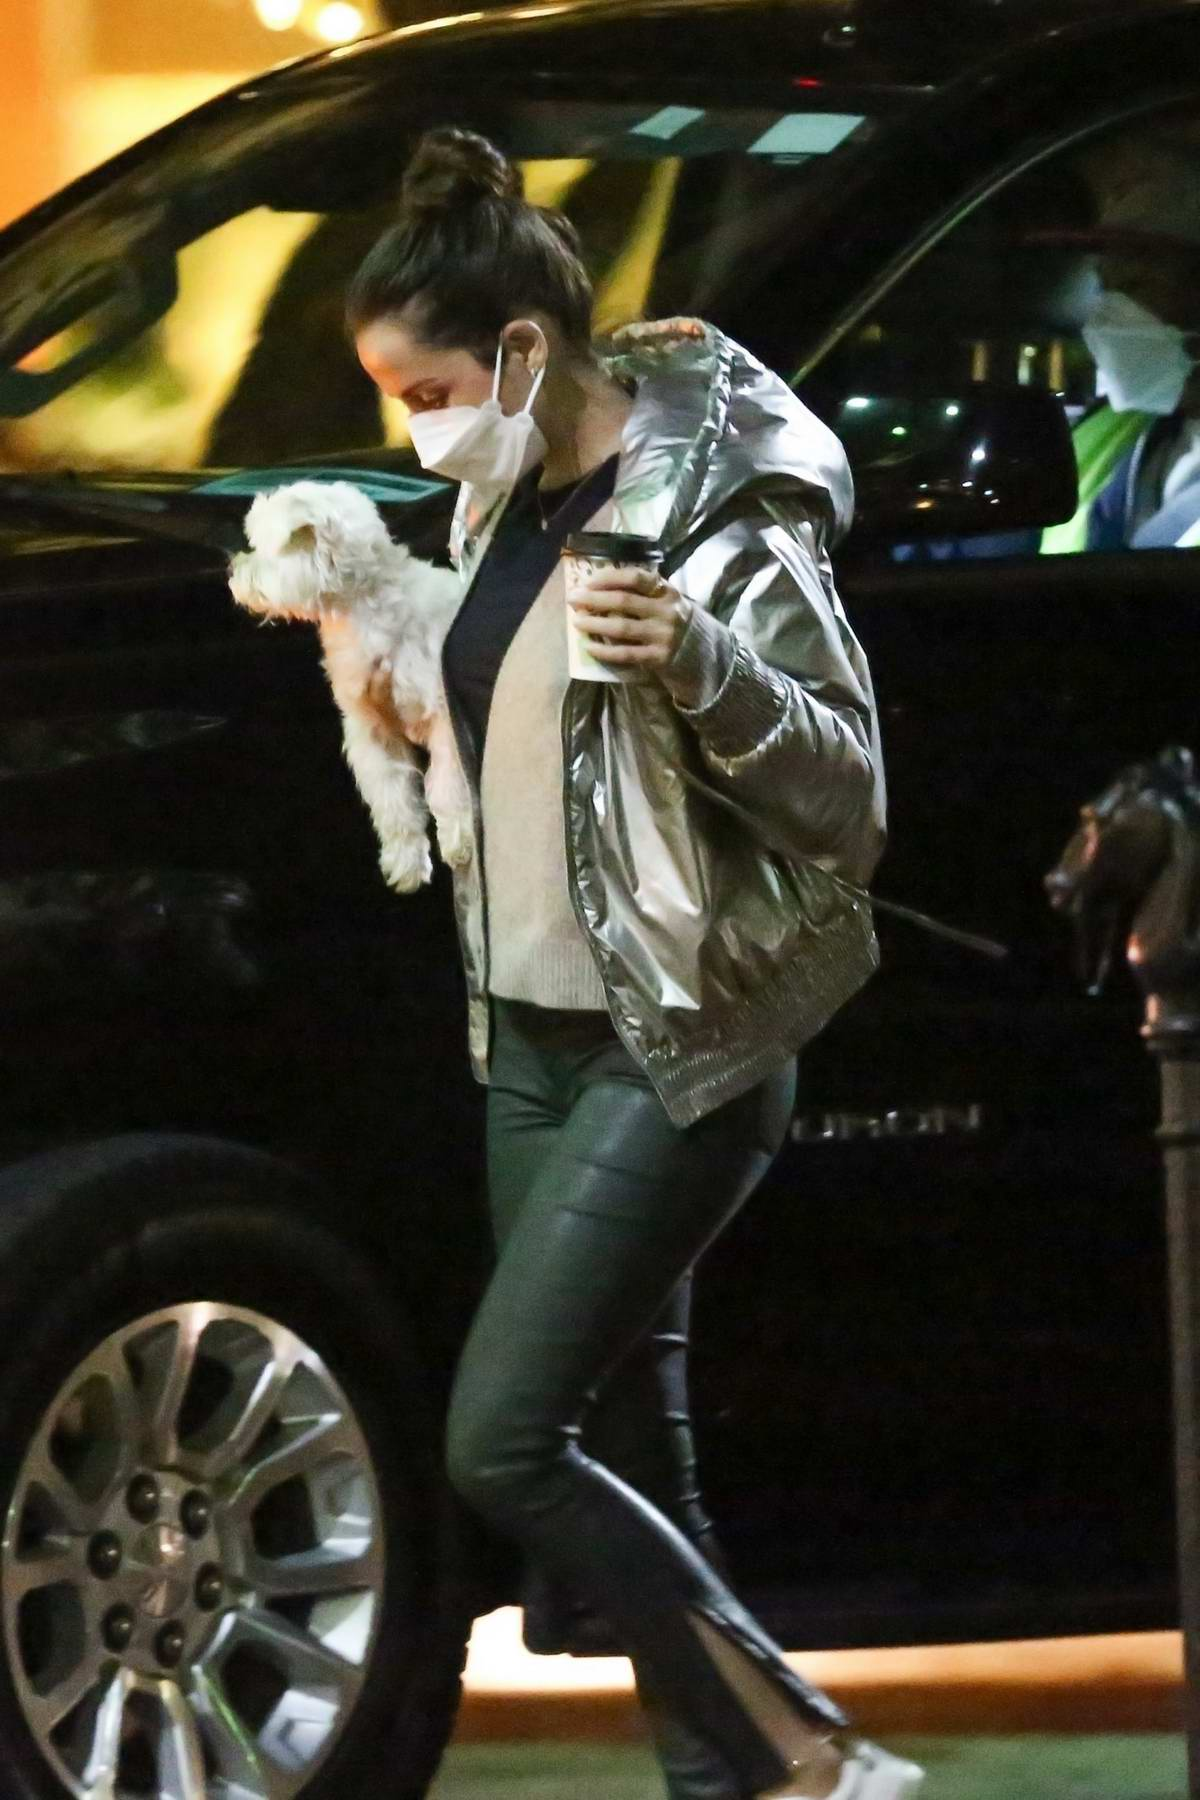 Ana de Armas carries her pup and a coffee after finishing a day of filming in New Orleans, Louisiana